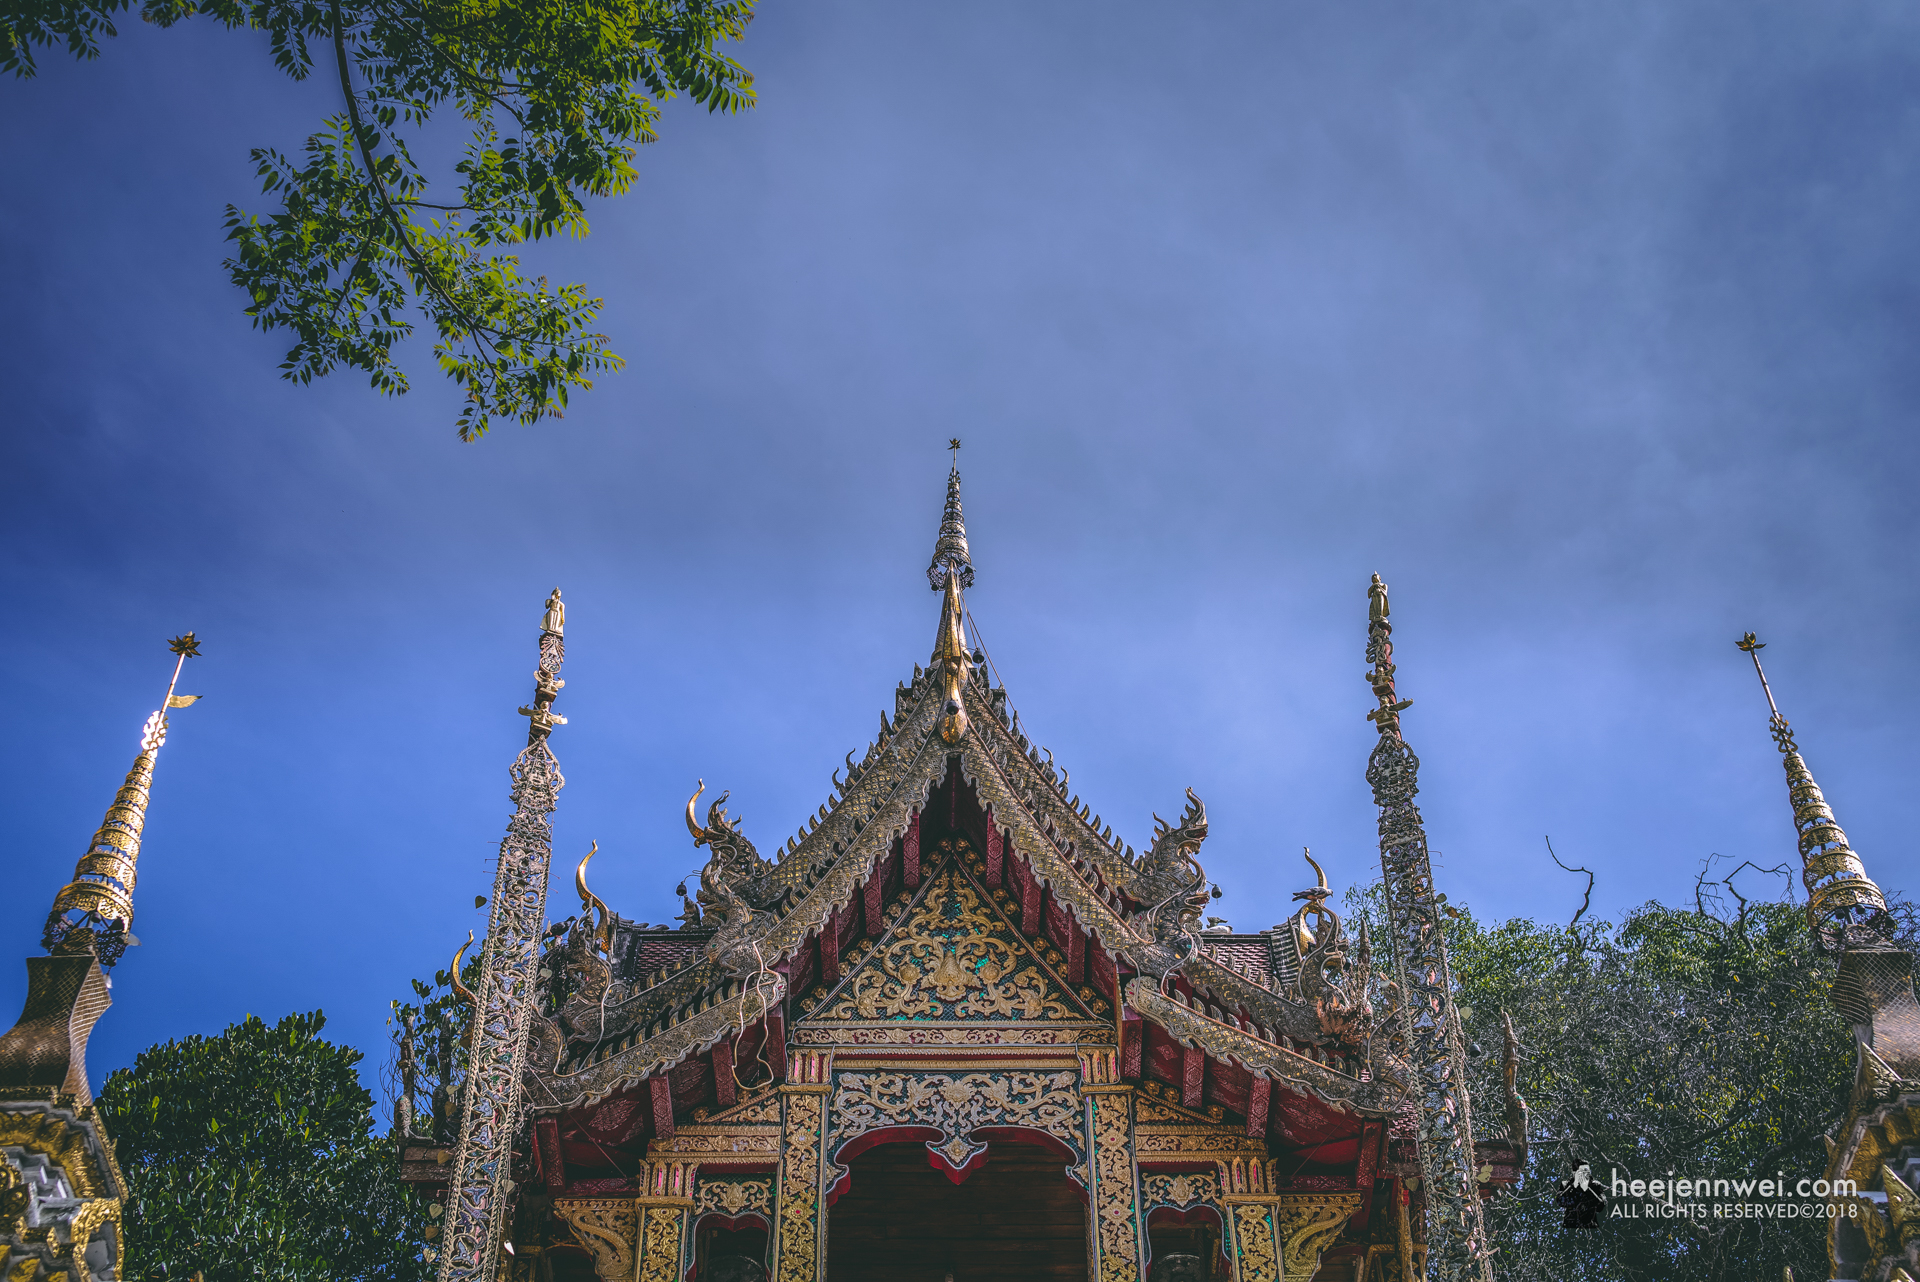 Doi Suthep has an interesting story - the construction began in 1386 and according to legend, the temple was built to hold a piece of bone from the Buddha's shoulder. One of those bones was mounted on a sacred white elephant who climb Doi Suthep mountain and stopped near the peak. The elephant trumpeted three times before dying on the mountain.